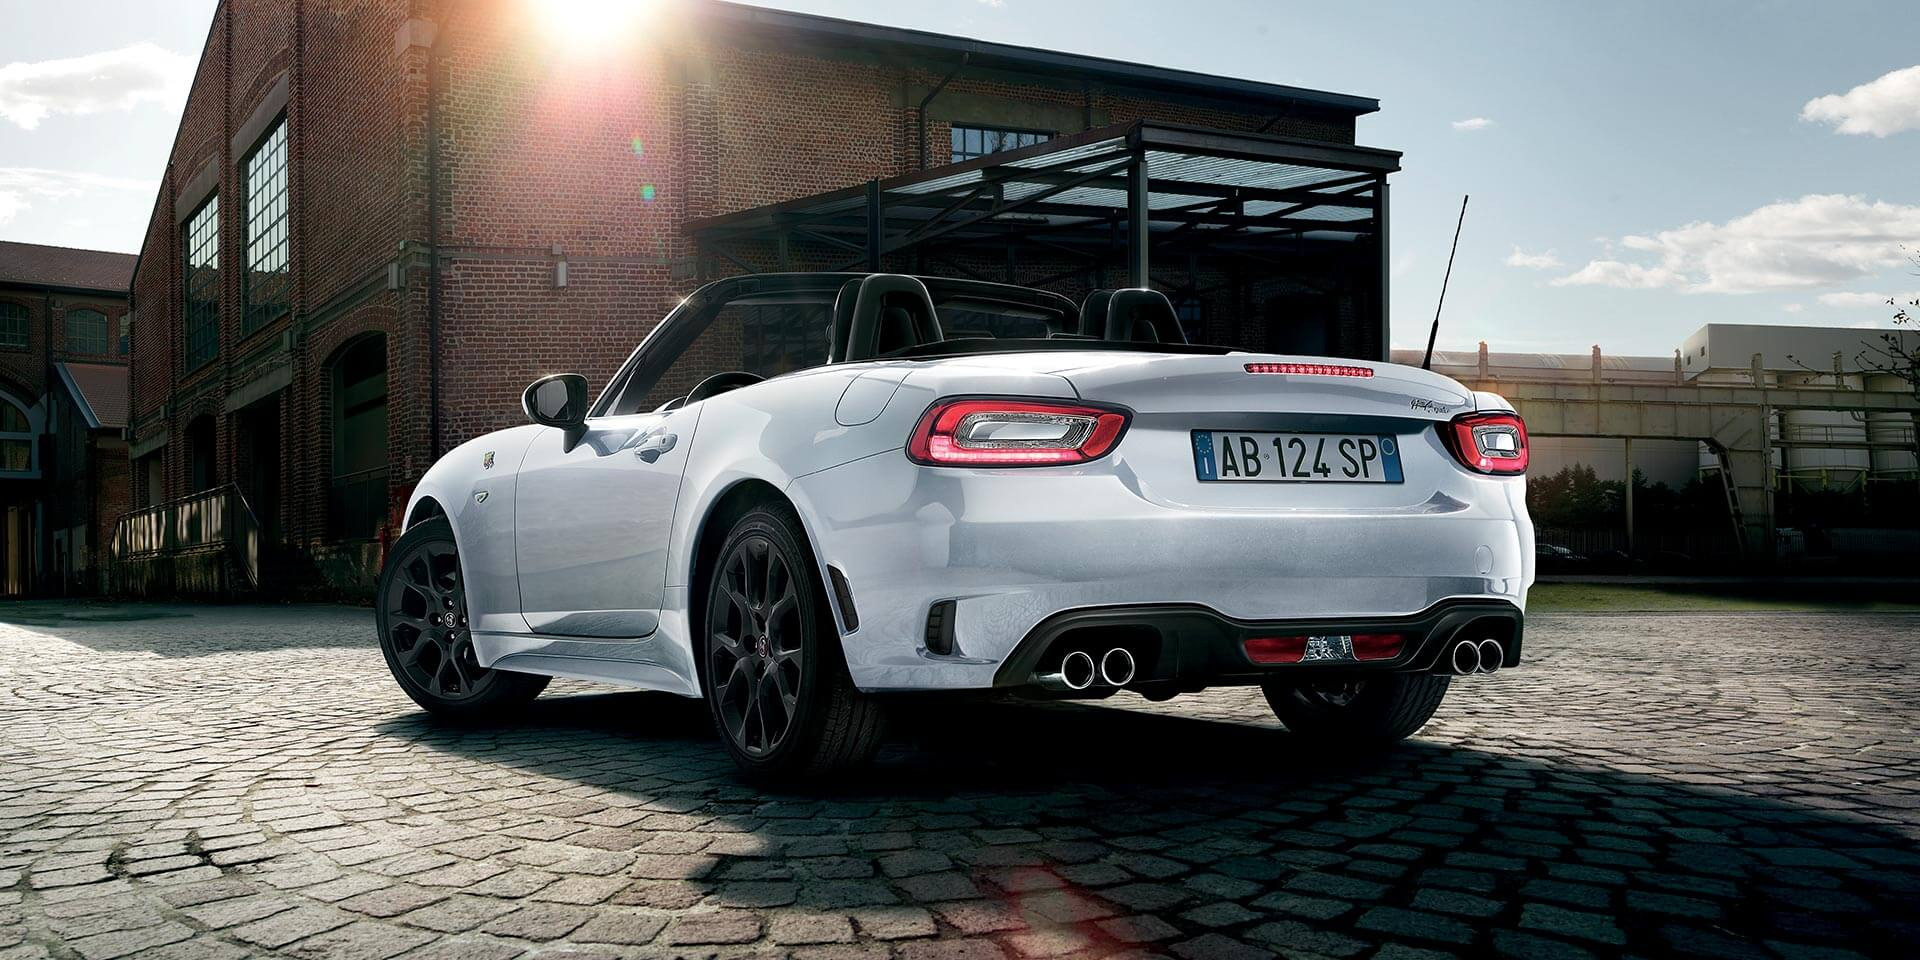 Lateral Abarth 124 spider